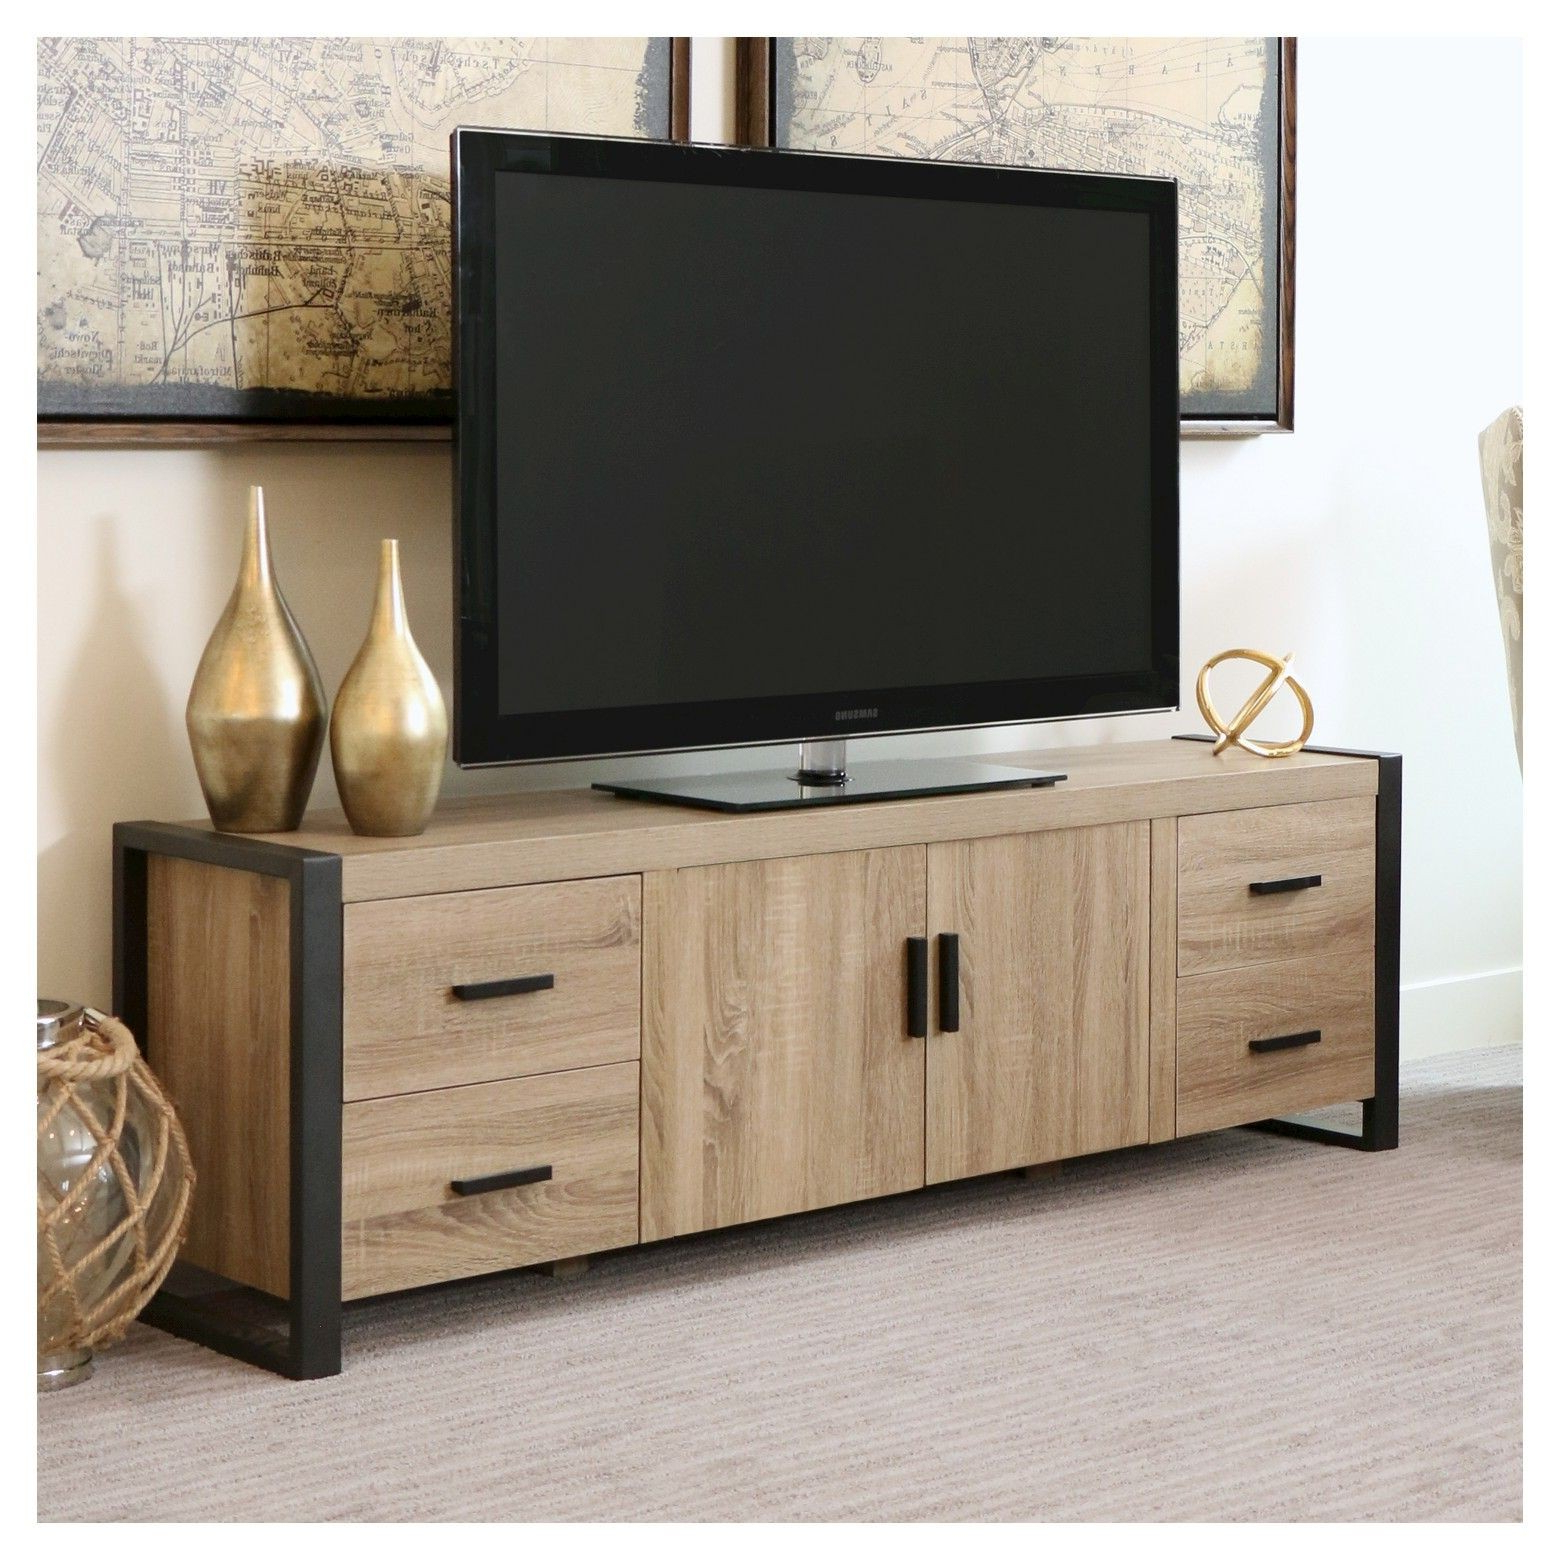 Newest Wood Tv Stands Solid Oak Entertainment Center With Doors Very Low Within Low Oak Tv Stands (View 5 of 20)